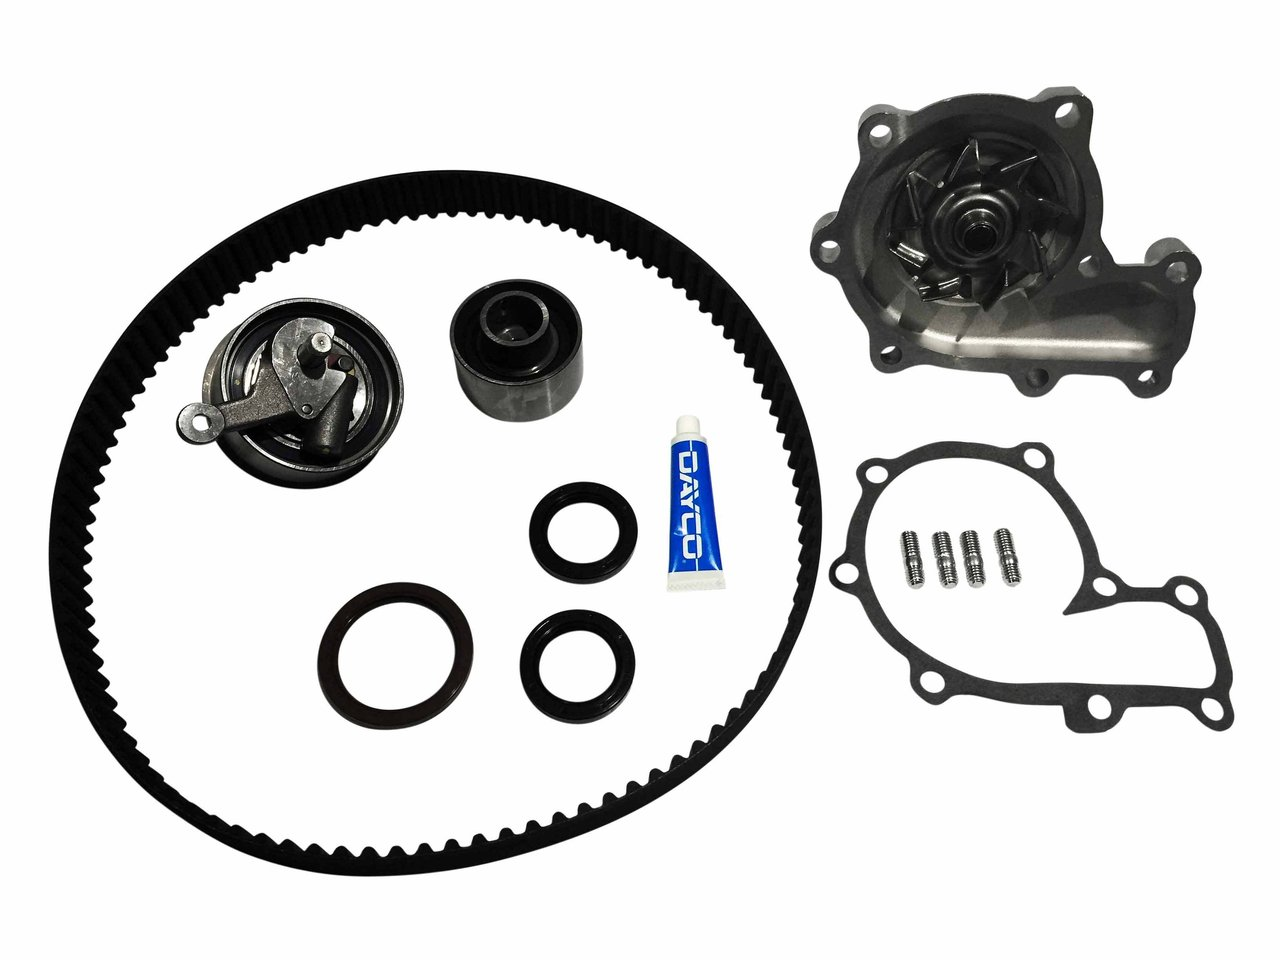 Timing Belt Water Pump Kit For Mazda Bt50 Ranger 30l Turbo Diesel 1999 Isuzu Rodeo Suitable Pj Dies Ktba253p